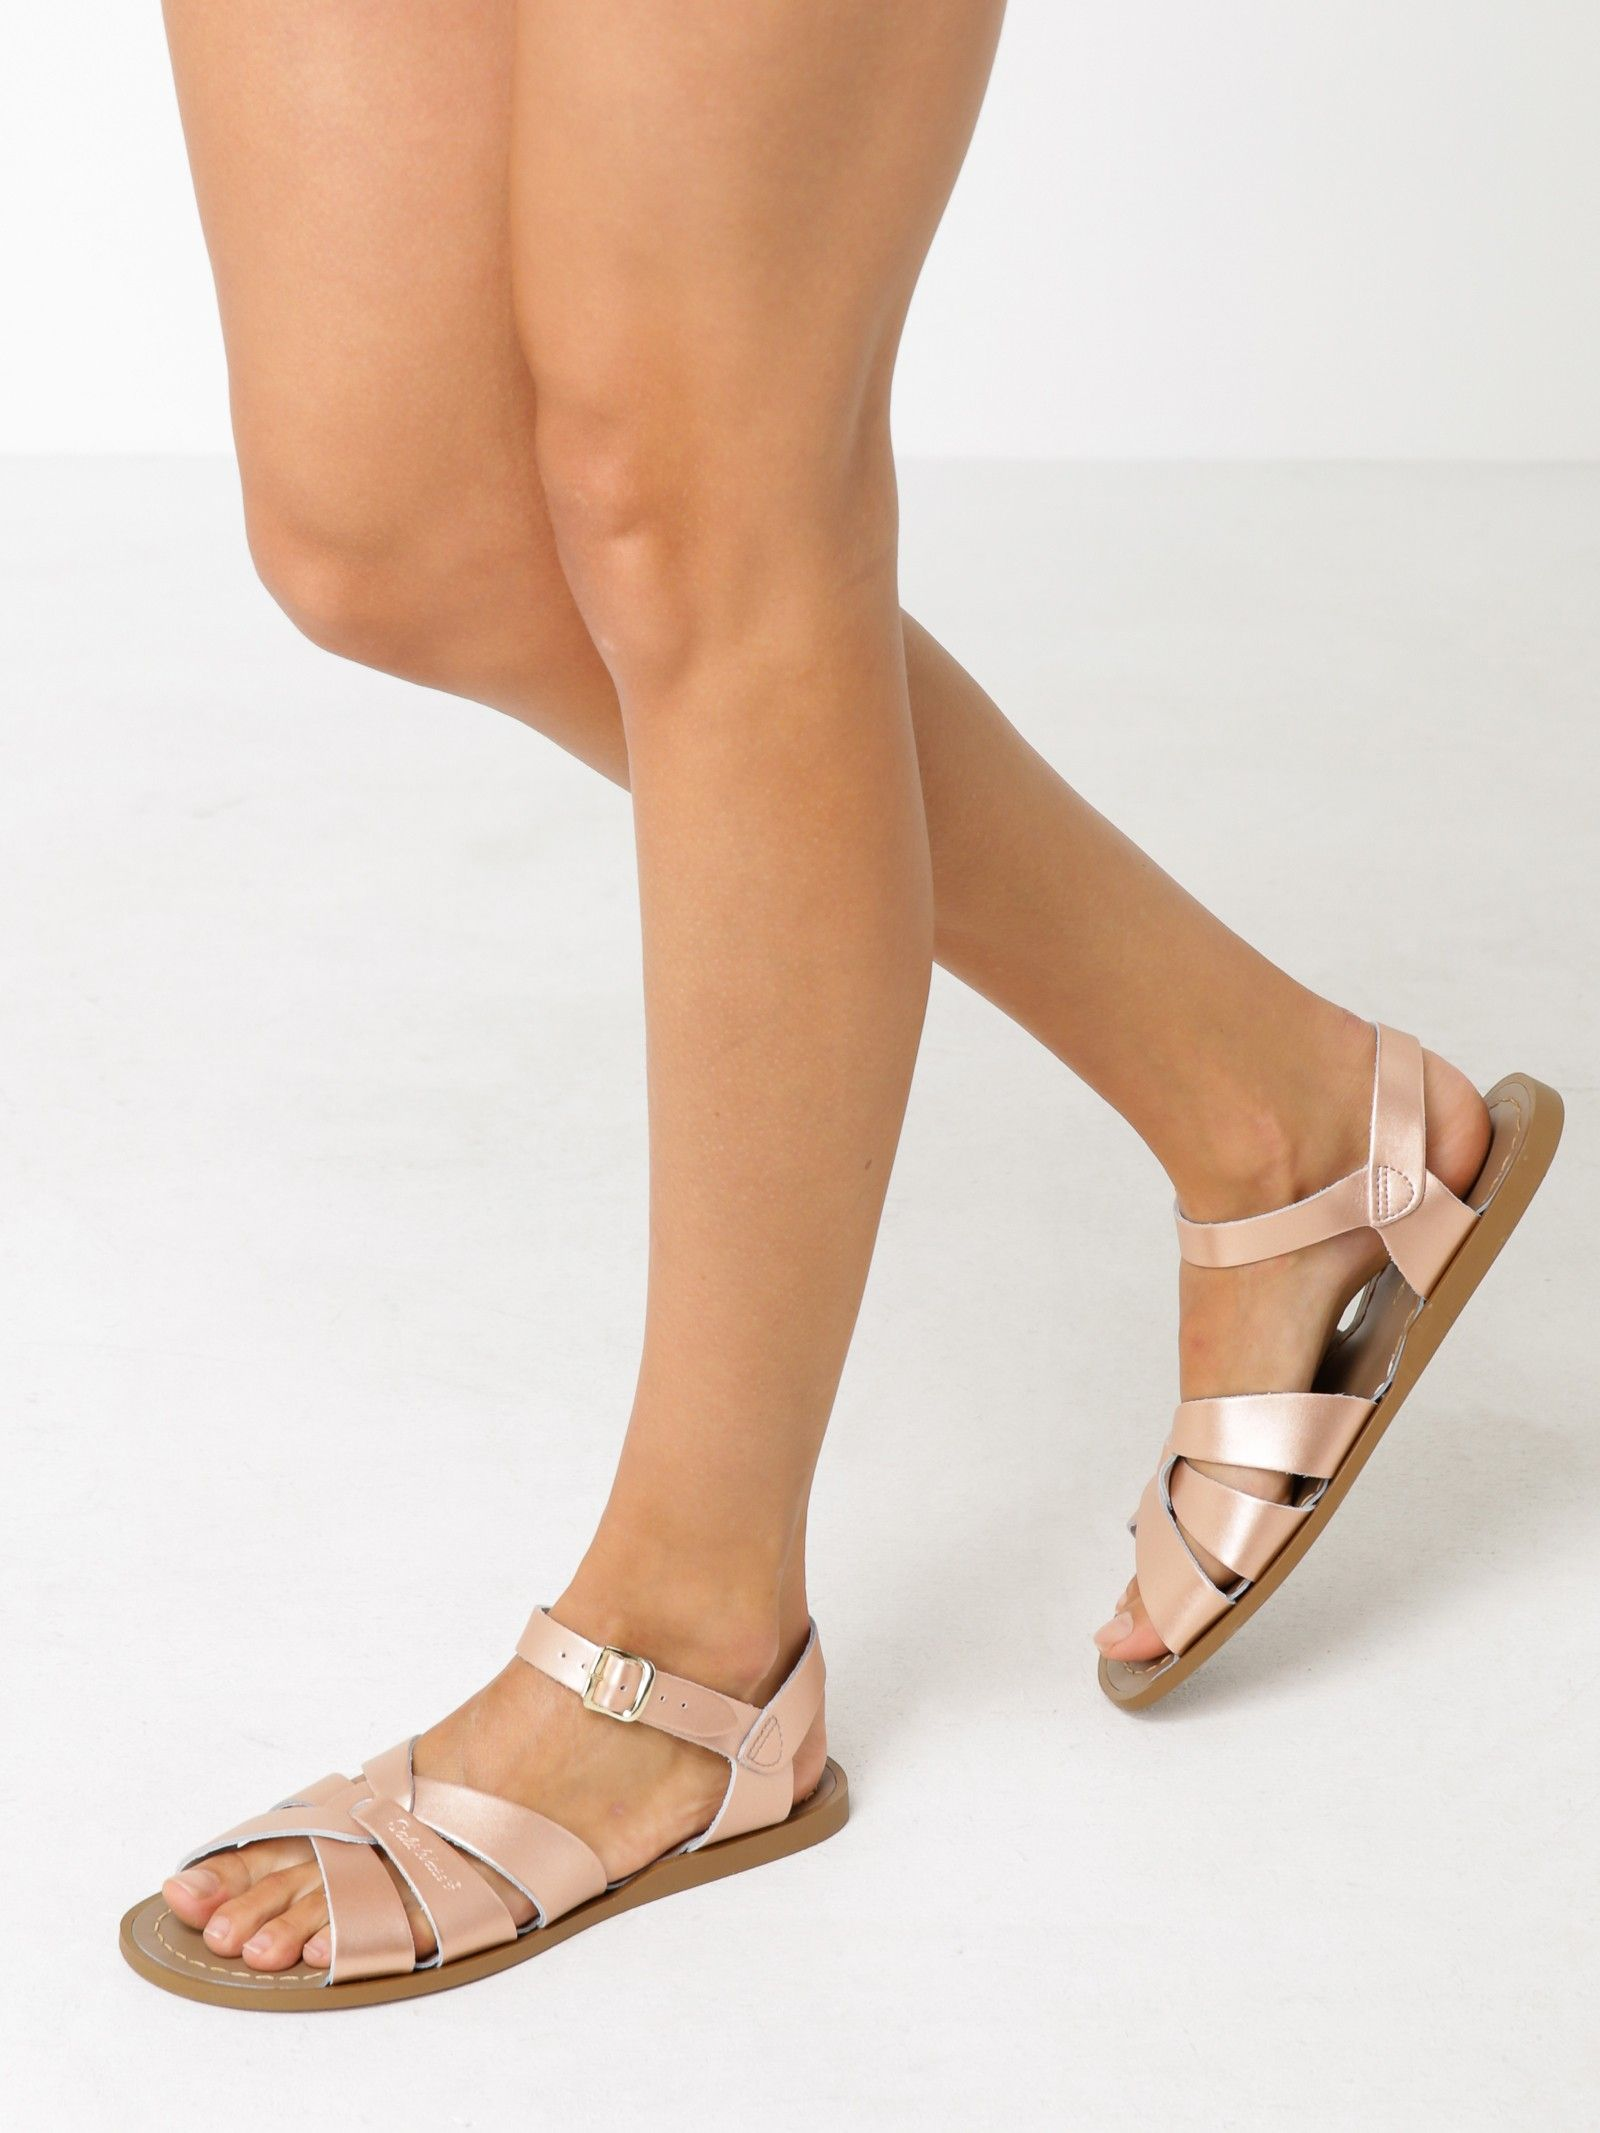 b9ae8f304efc4 saltwater sandals rose gold | California | Rose gold, Sandals, How ...